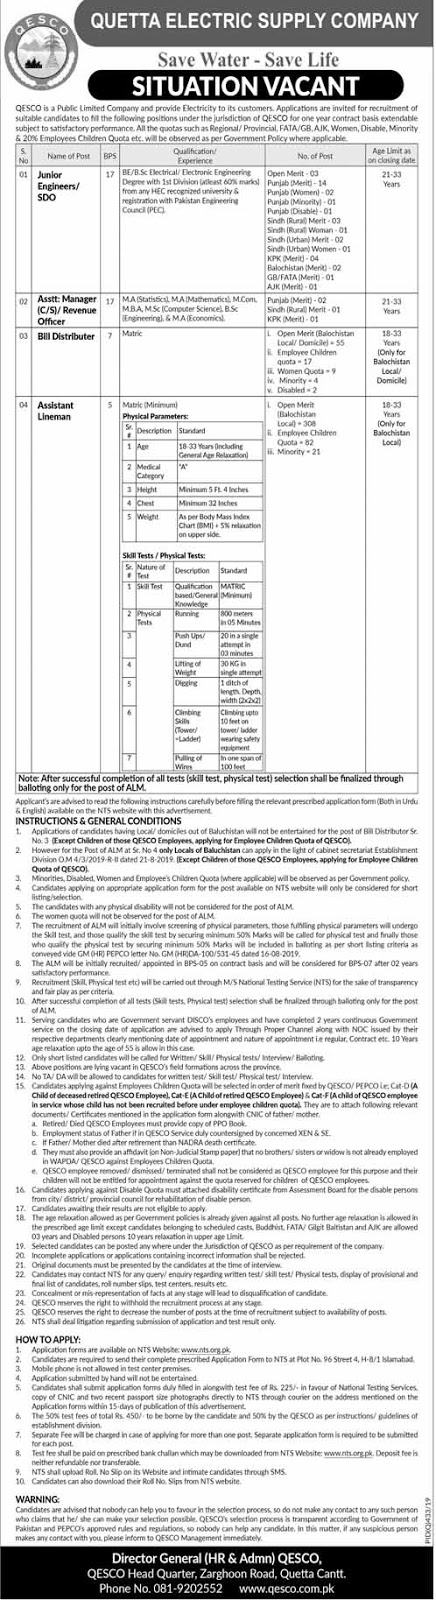 NTS QESCO Jobs in Quetta Electric Supply Company Oct 2019